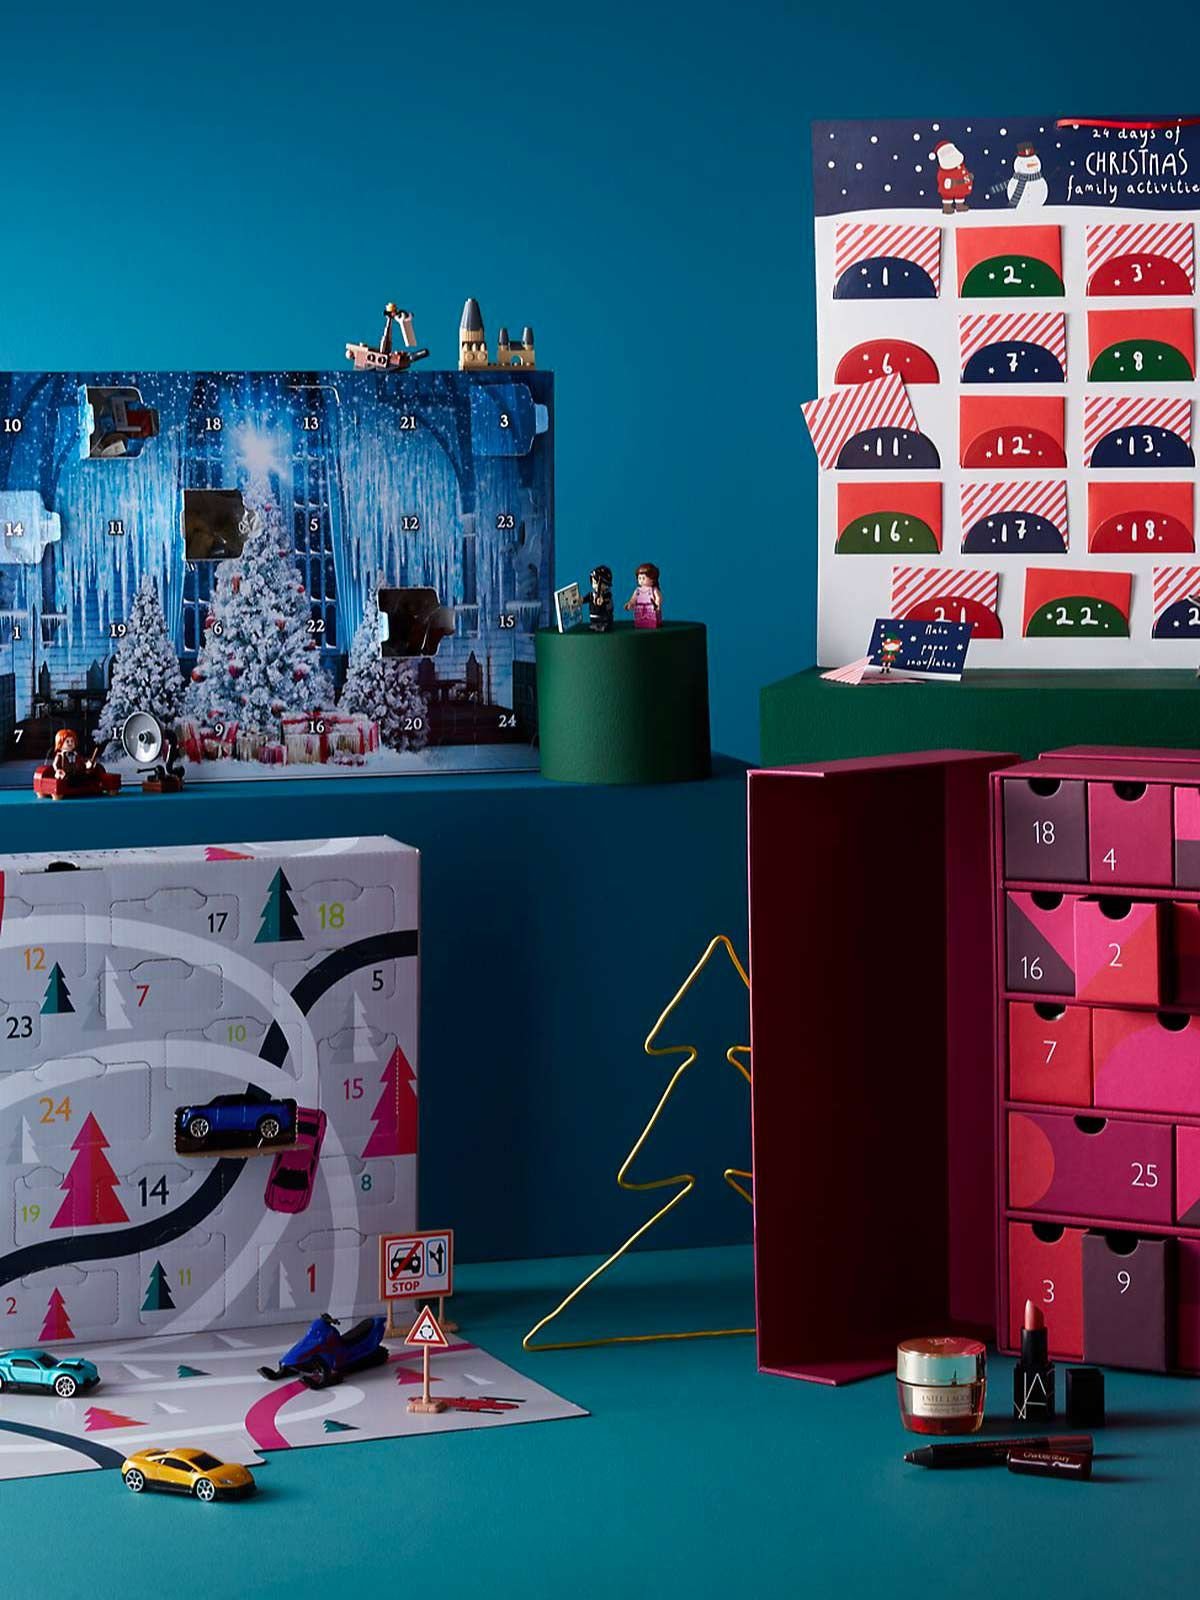 Assortment of advent calendars on turquoise background